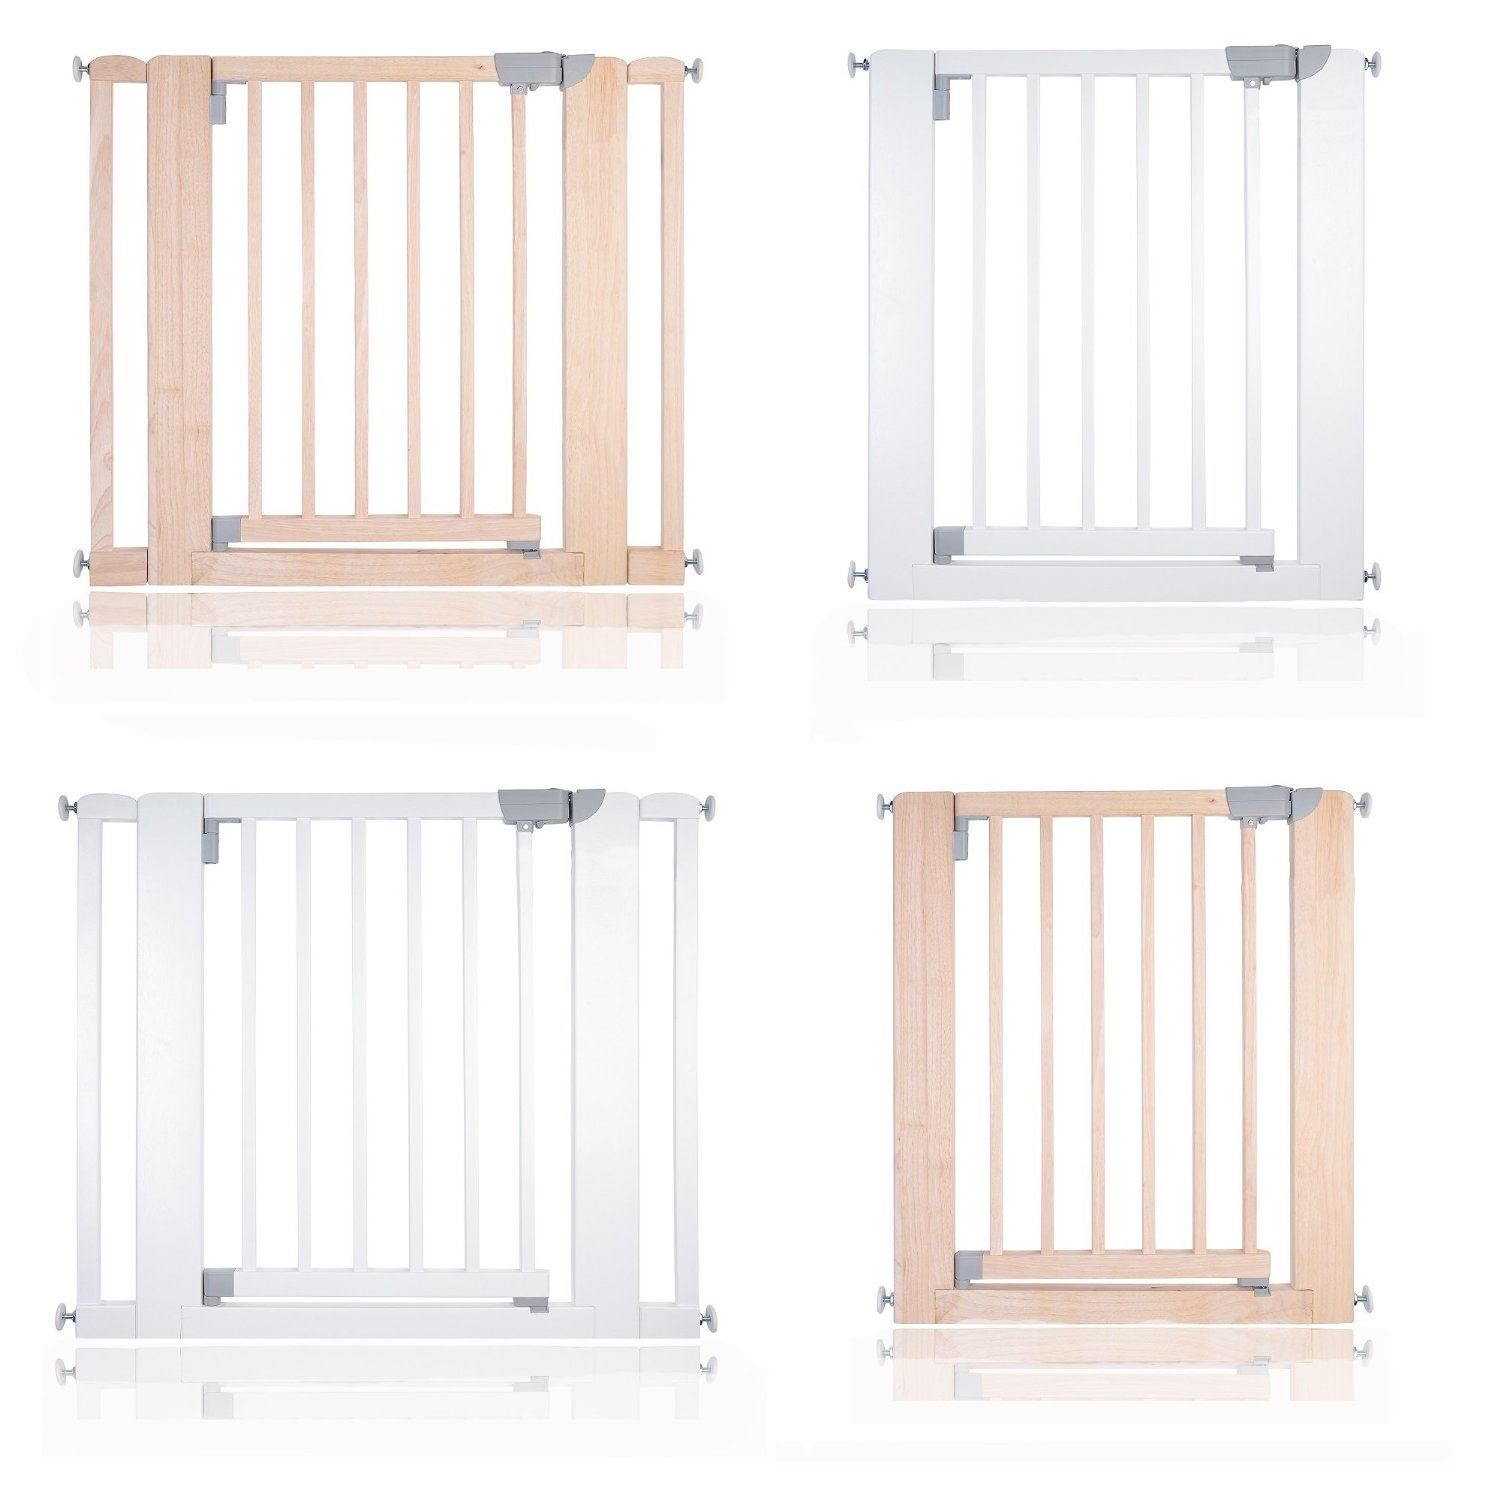 safetots chunky wooden pressure fit stair gate  cm safety  - safetots chunky wooden pressure fit stair gate  cm safety barrier white